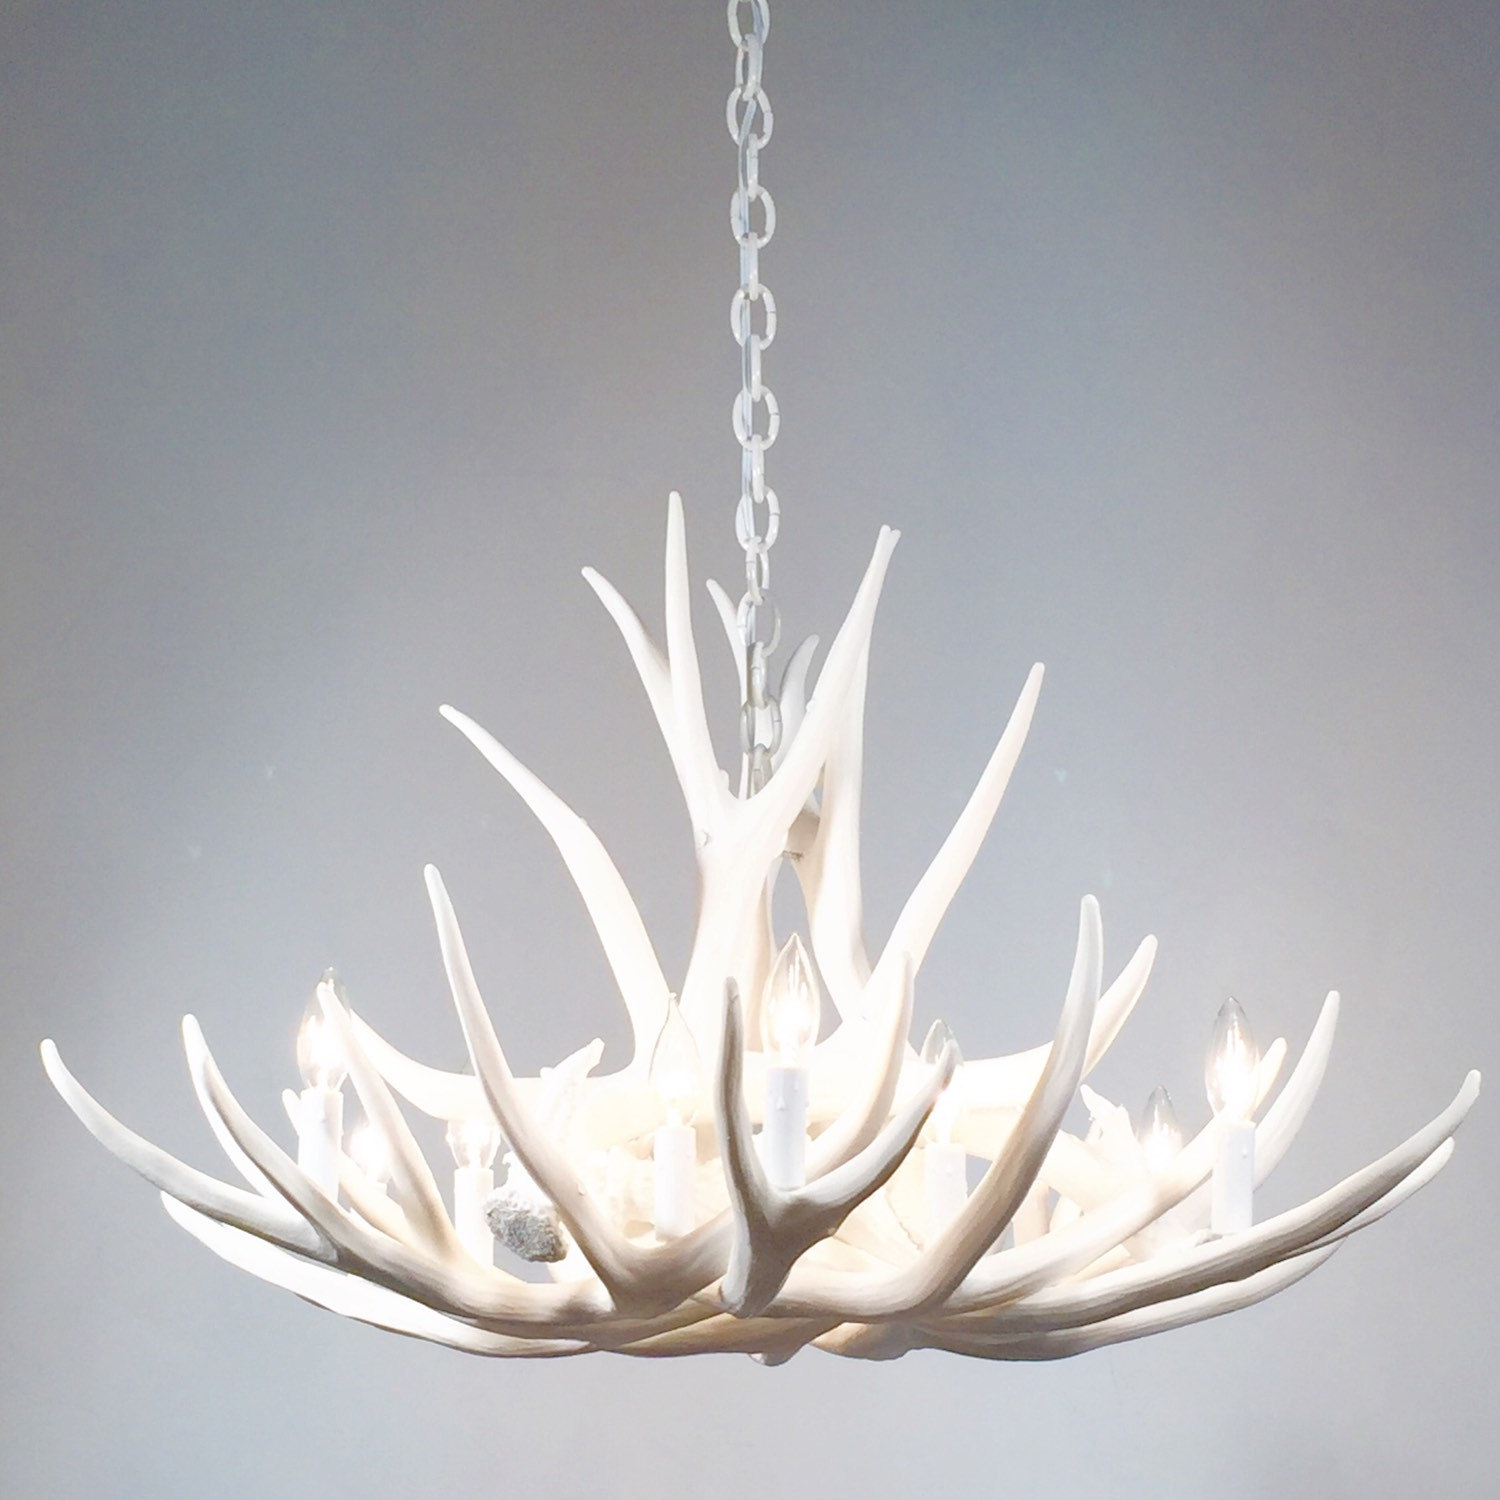 White Antler Chandelier Faux Deer Antler Chandelier D9 Throughout Stag Horn Chandelier (View 12 of 15)